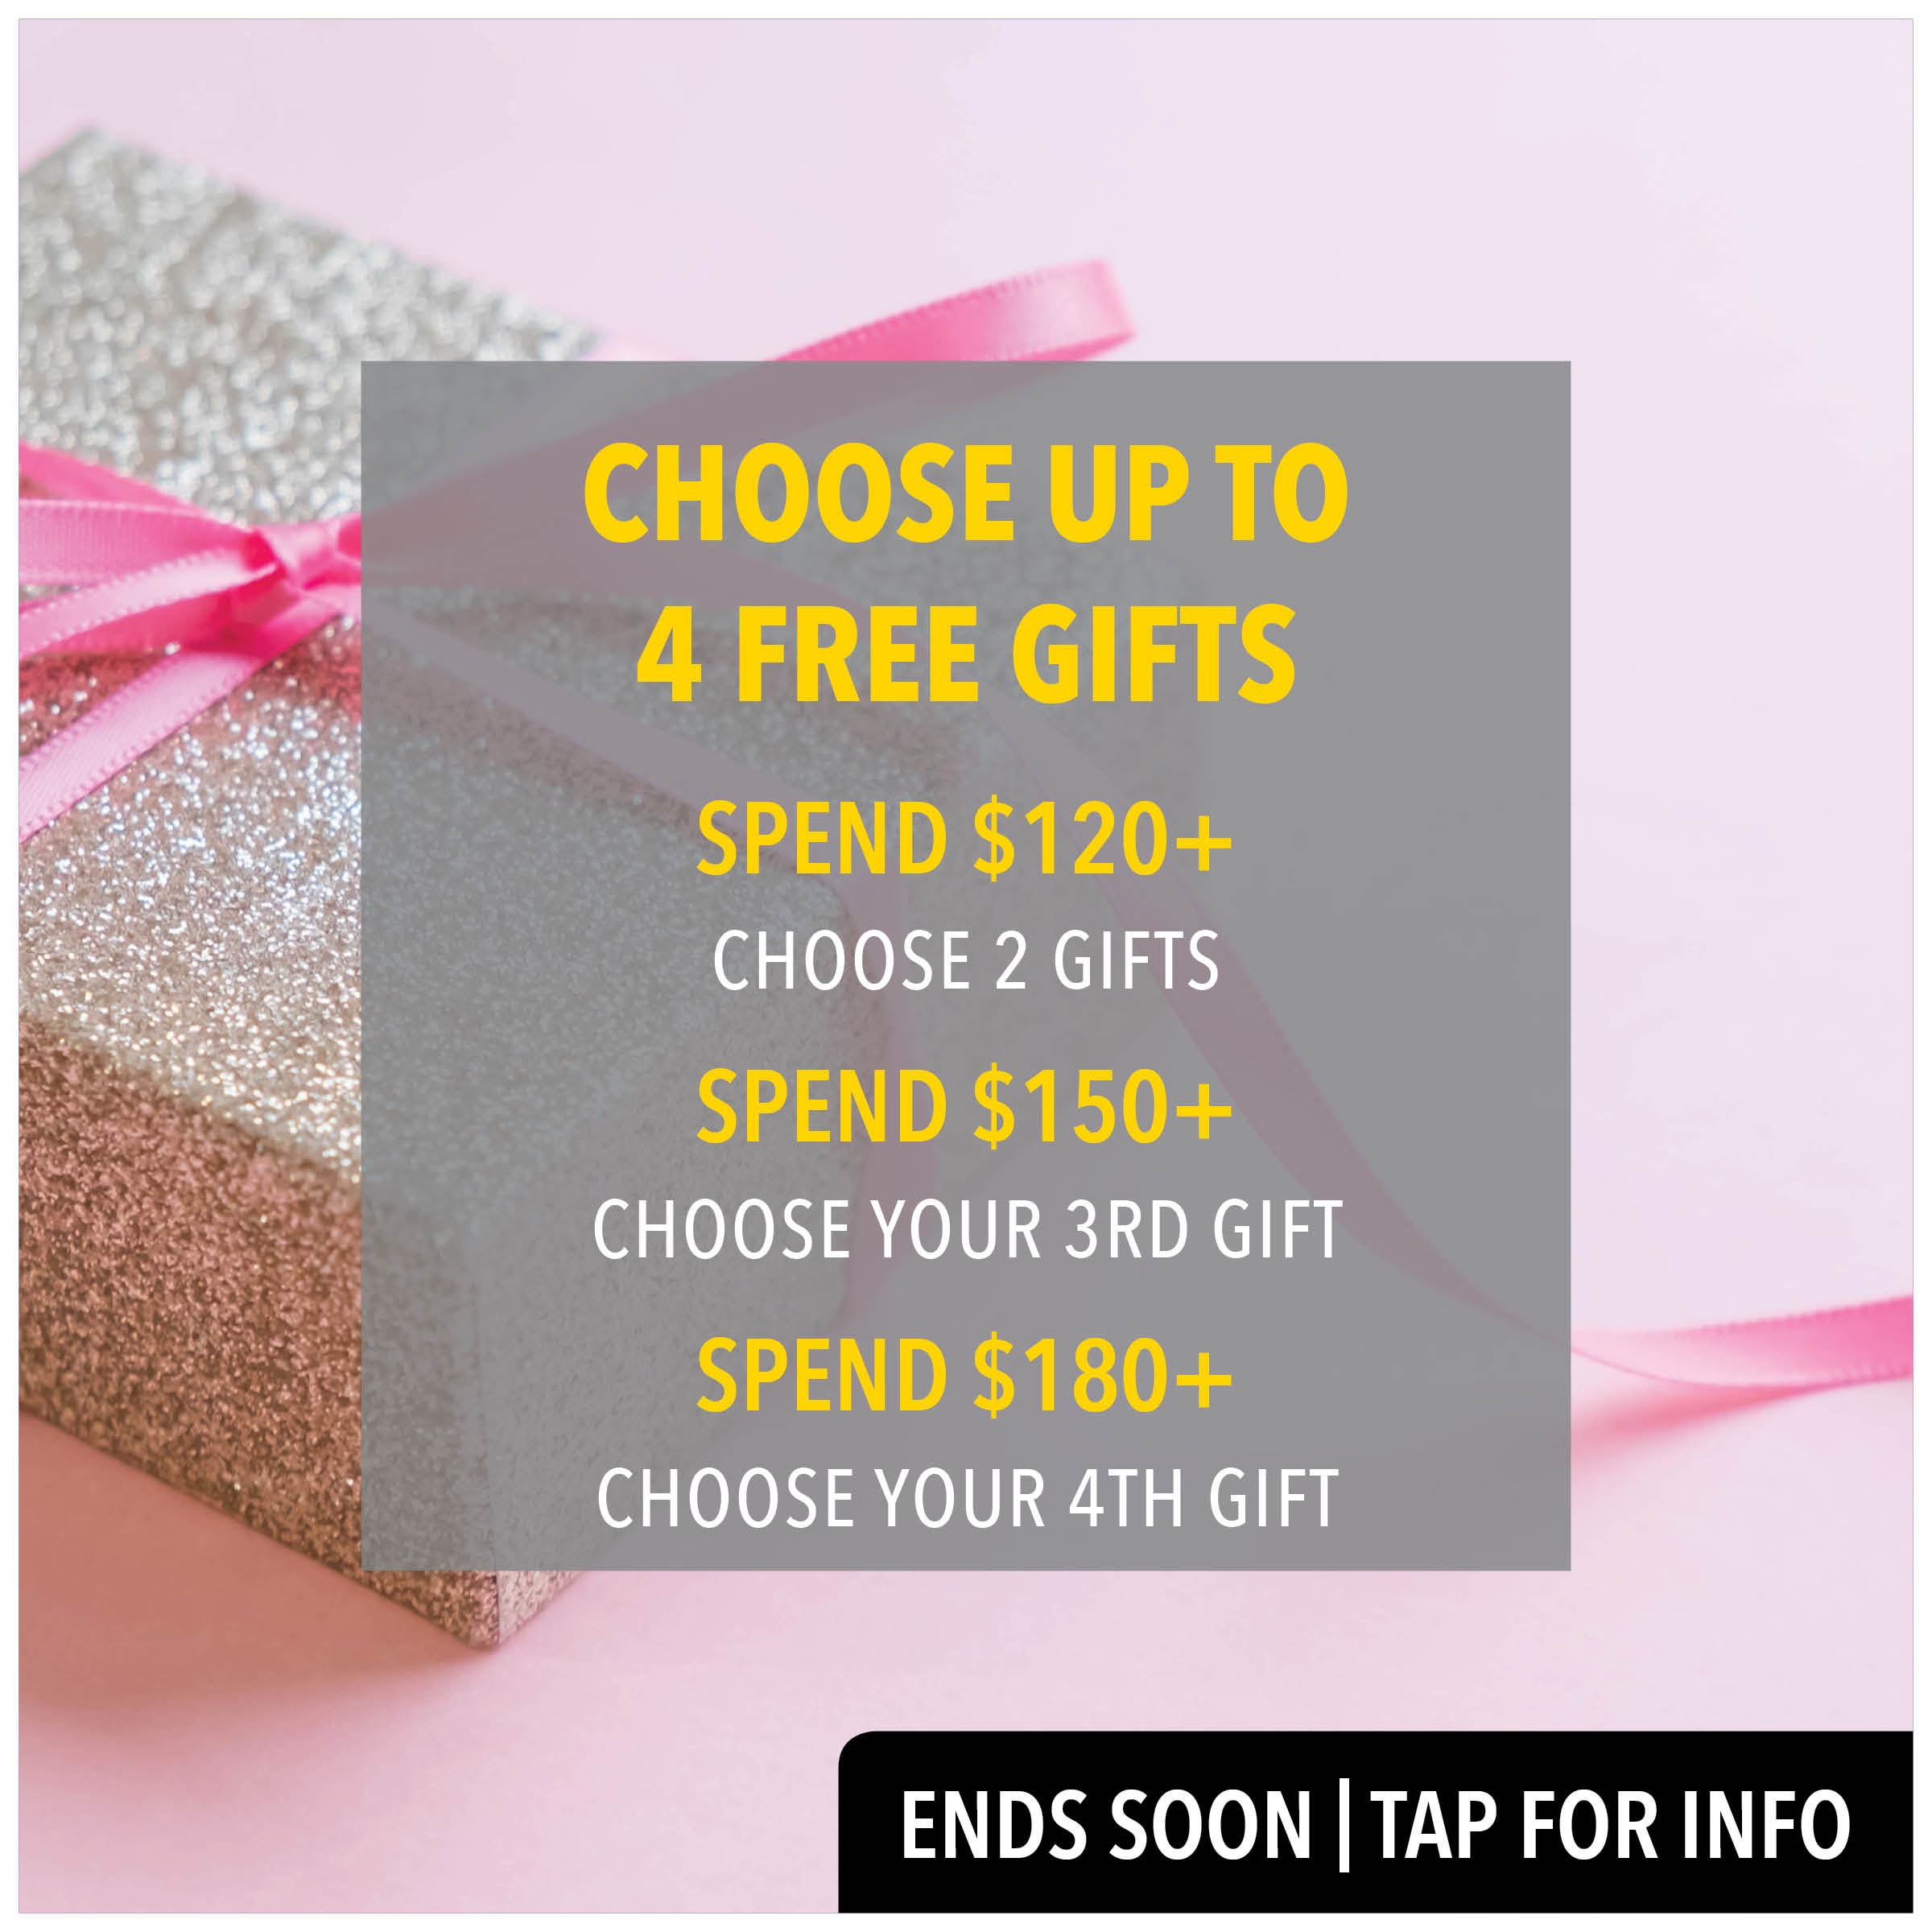 choose up to 4 free gifts from prodermal